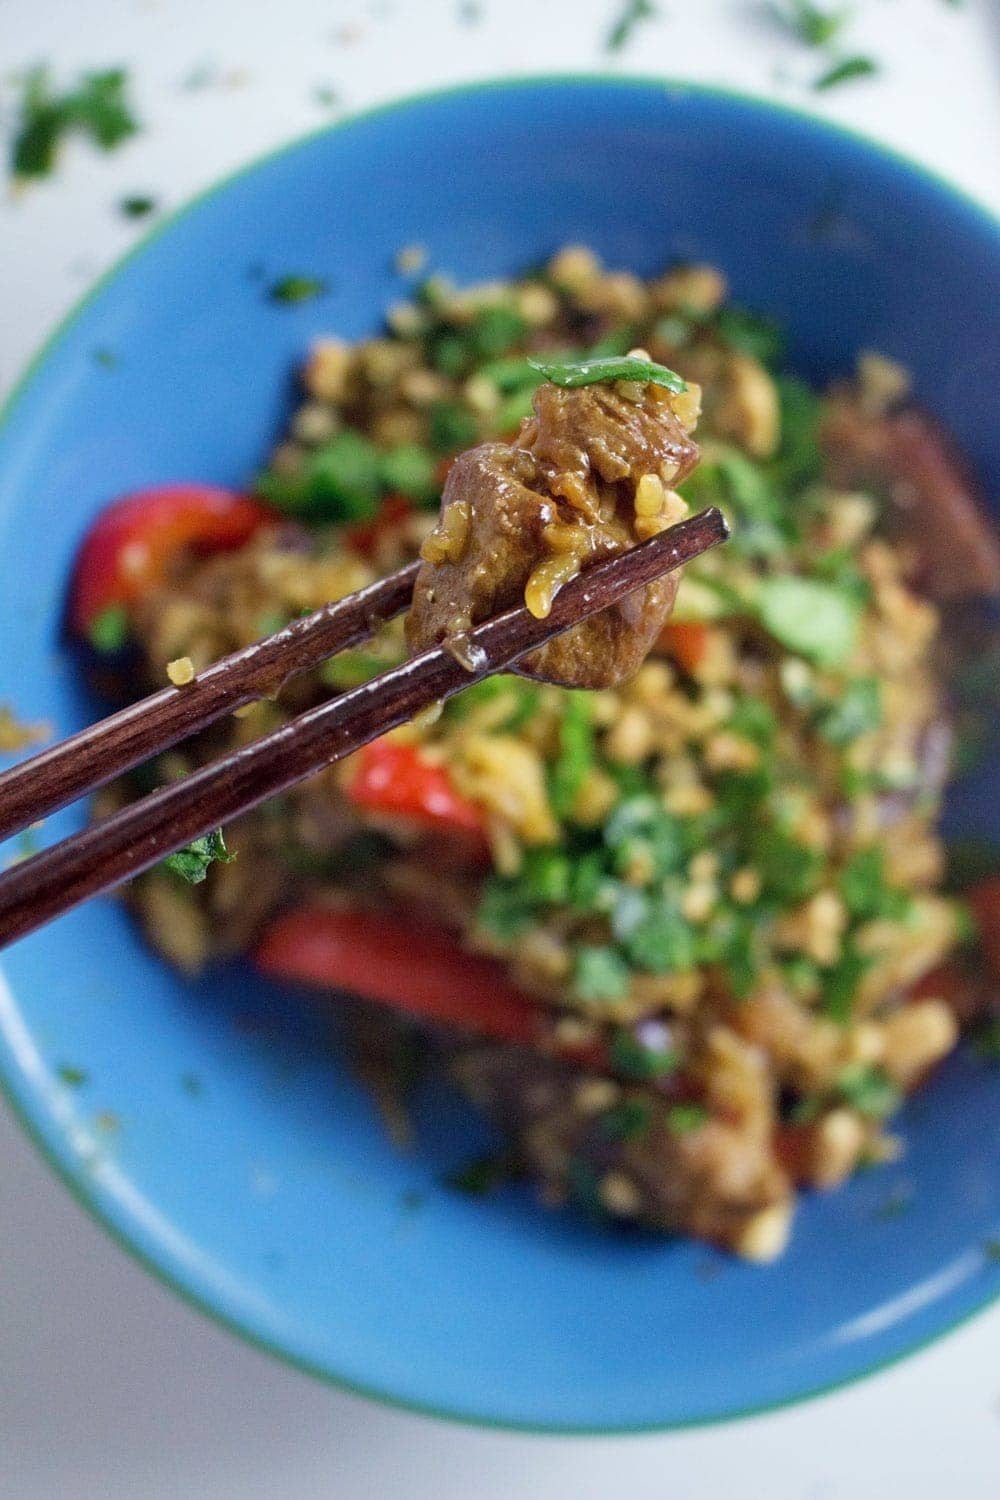 This caramelised pork stir fry is filled with crispy pork, a sweet, sticky sauce and topped with a good sprinkling of chopped peanuts.